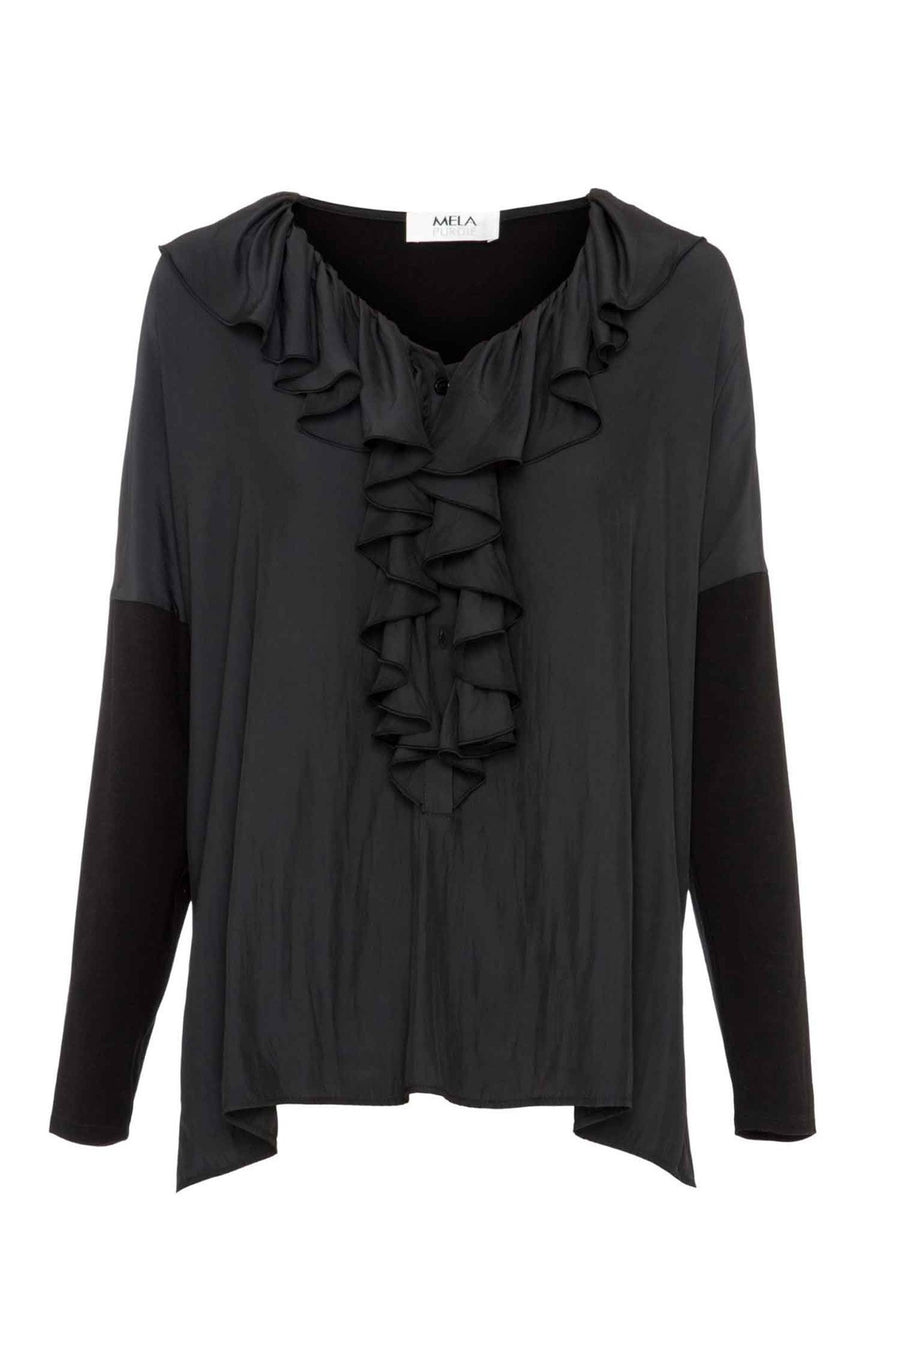 versaille-spliced-blouse-in-black-by-mela-purdie